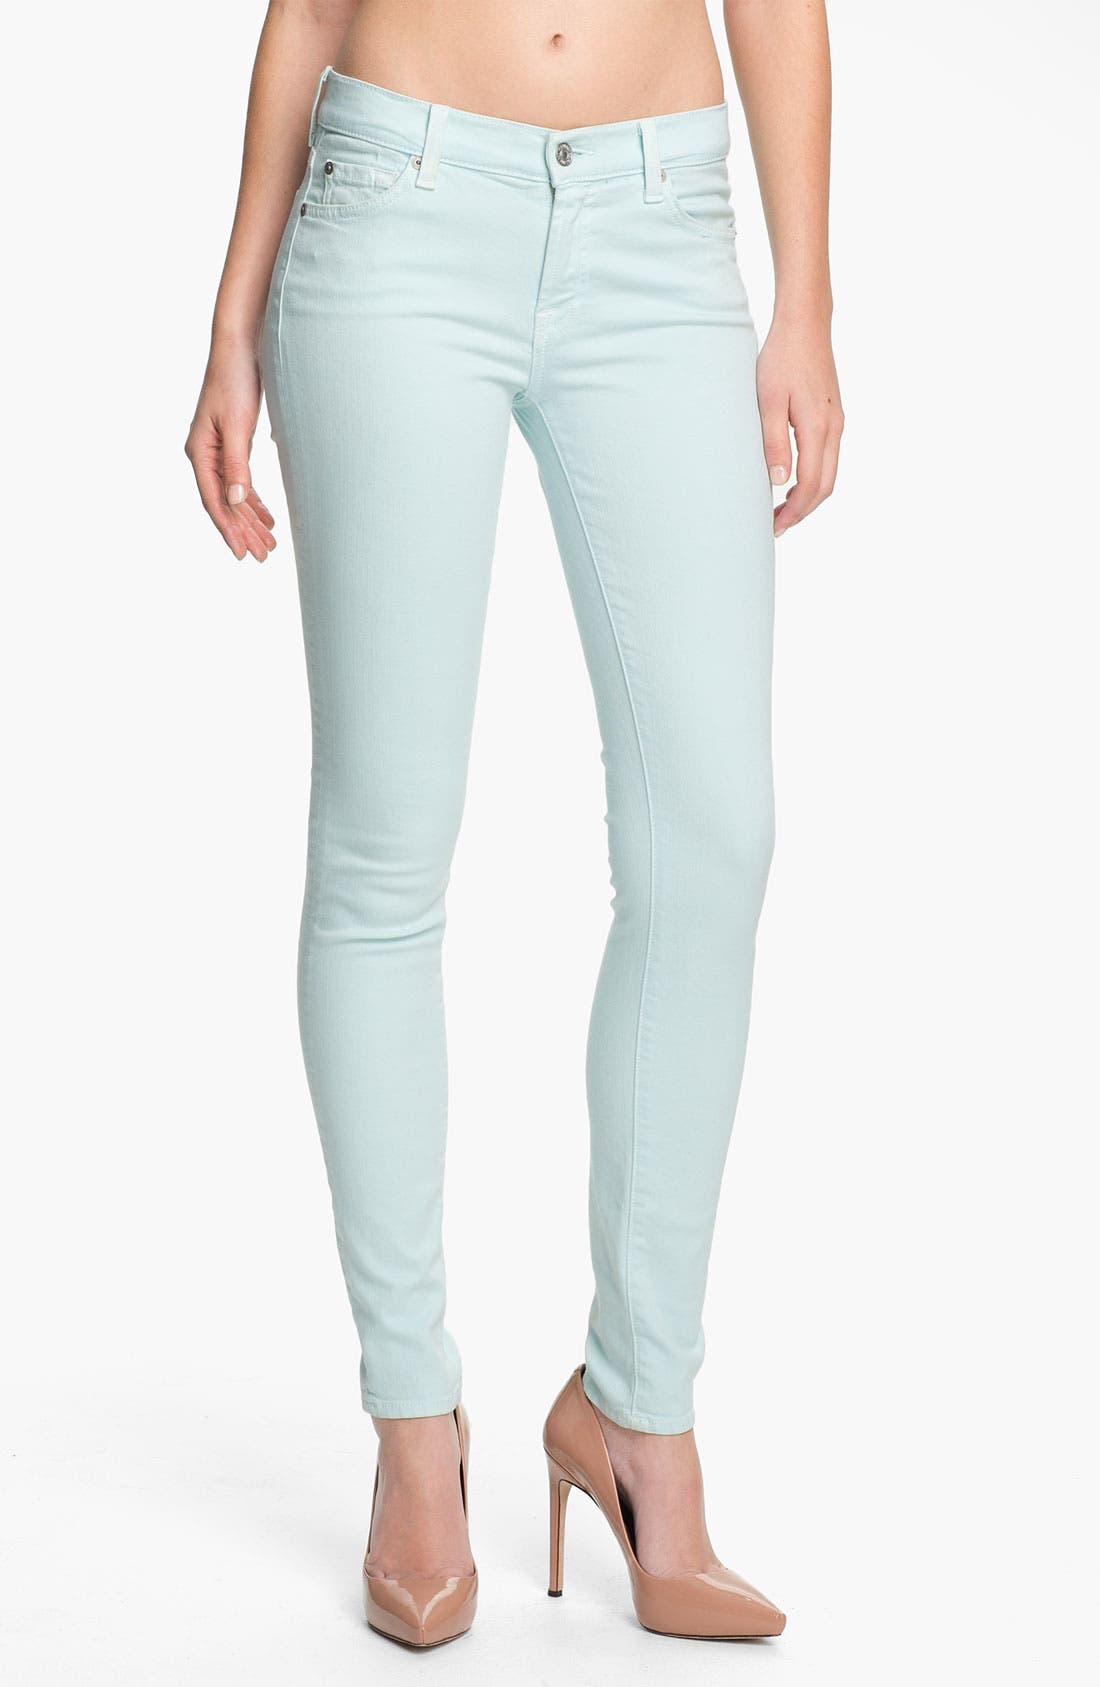 Main Image - 7 For All Mankind® 'Slim Illusion' Overdyed Skinny Stretch Jeans (Sea Glass)